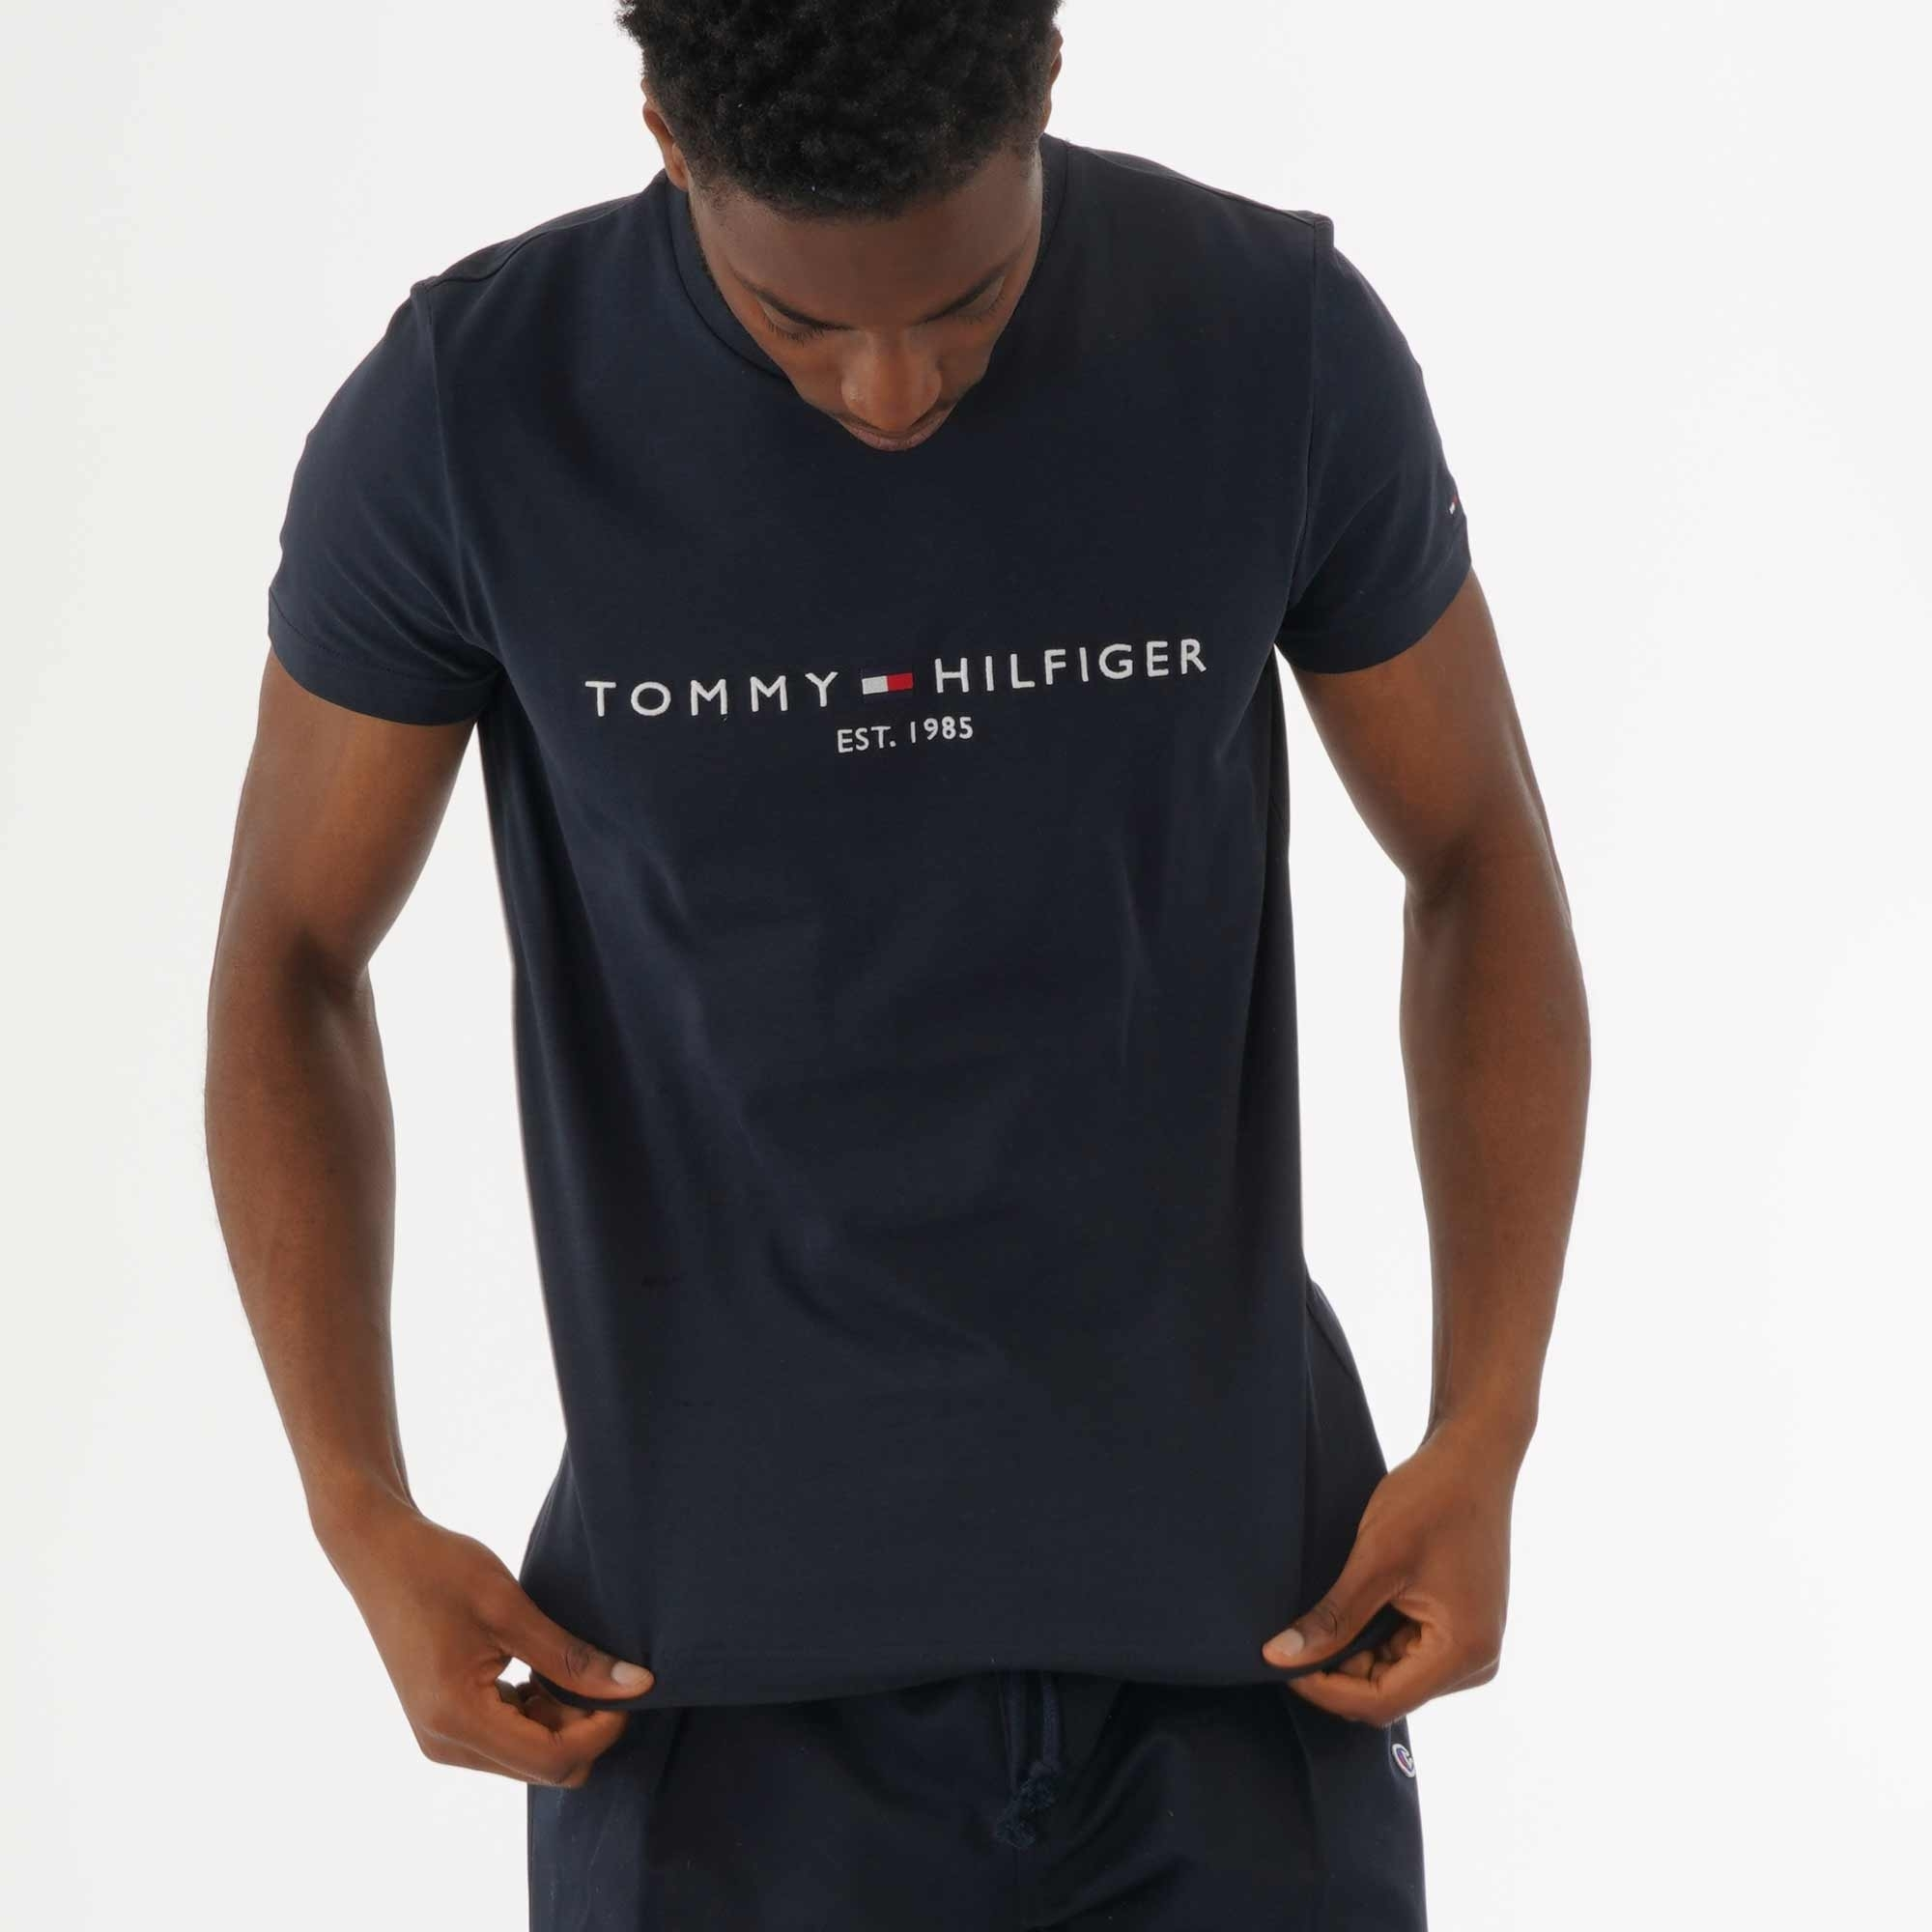 TOMMY HILFIGER T SHIRT MENS BOX LOGO SKY CAPTAIN CREW NECK TEE